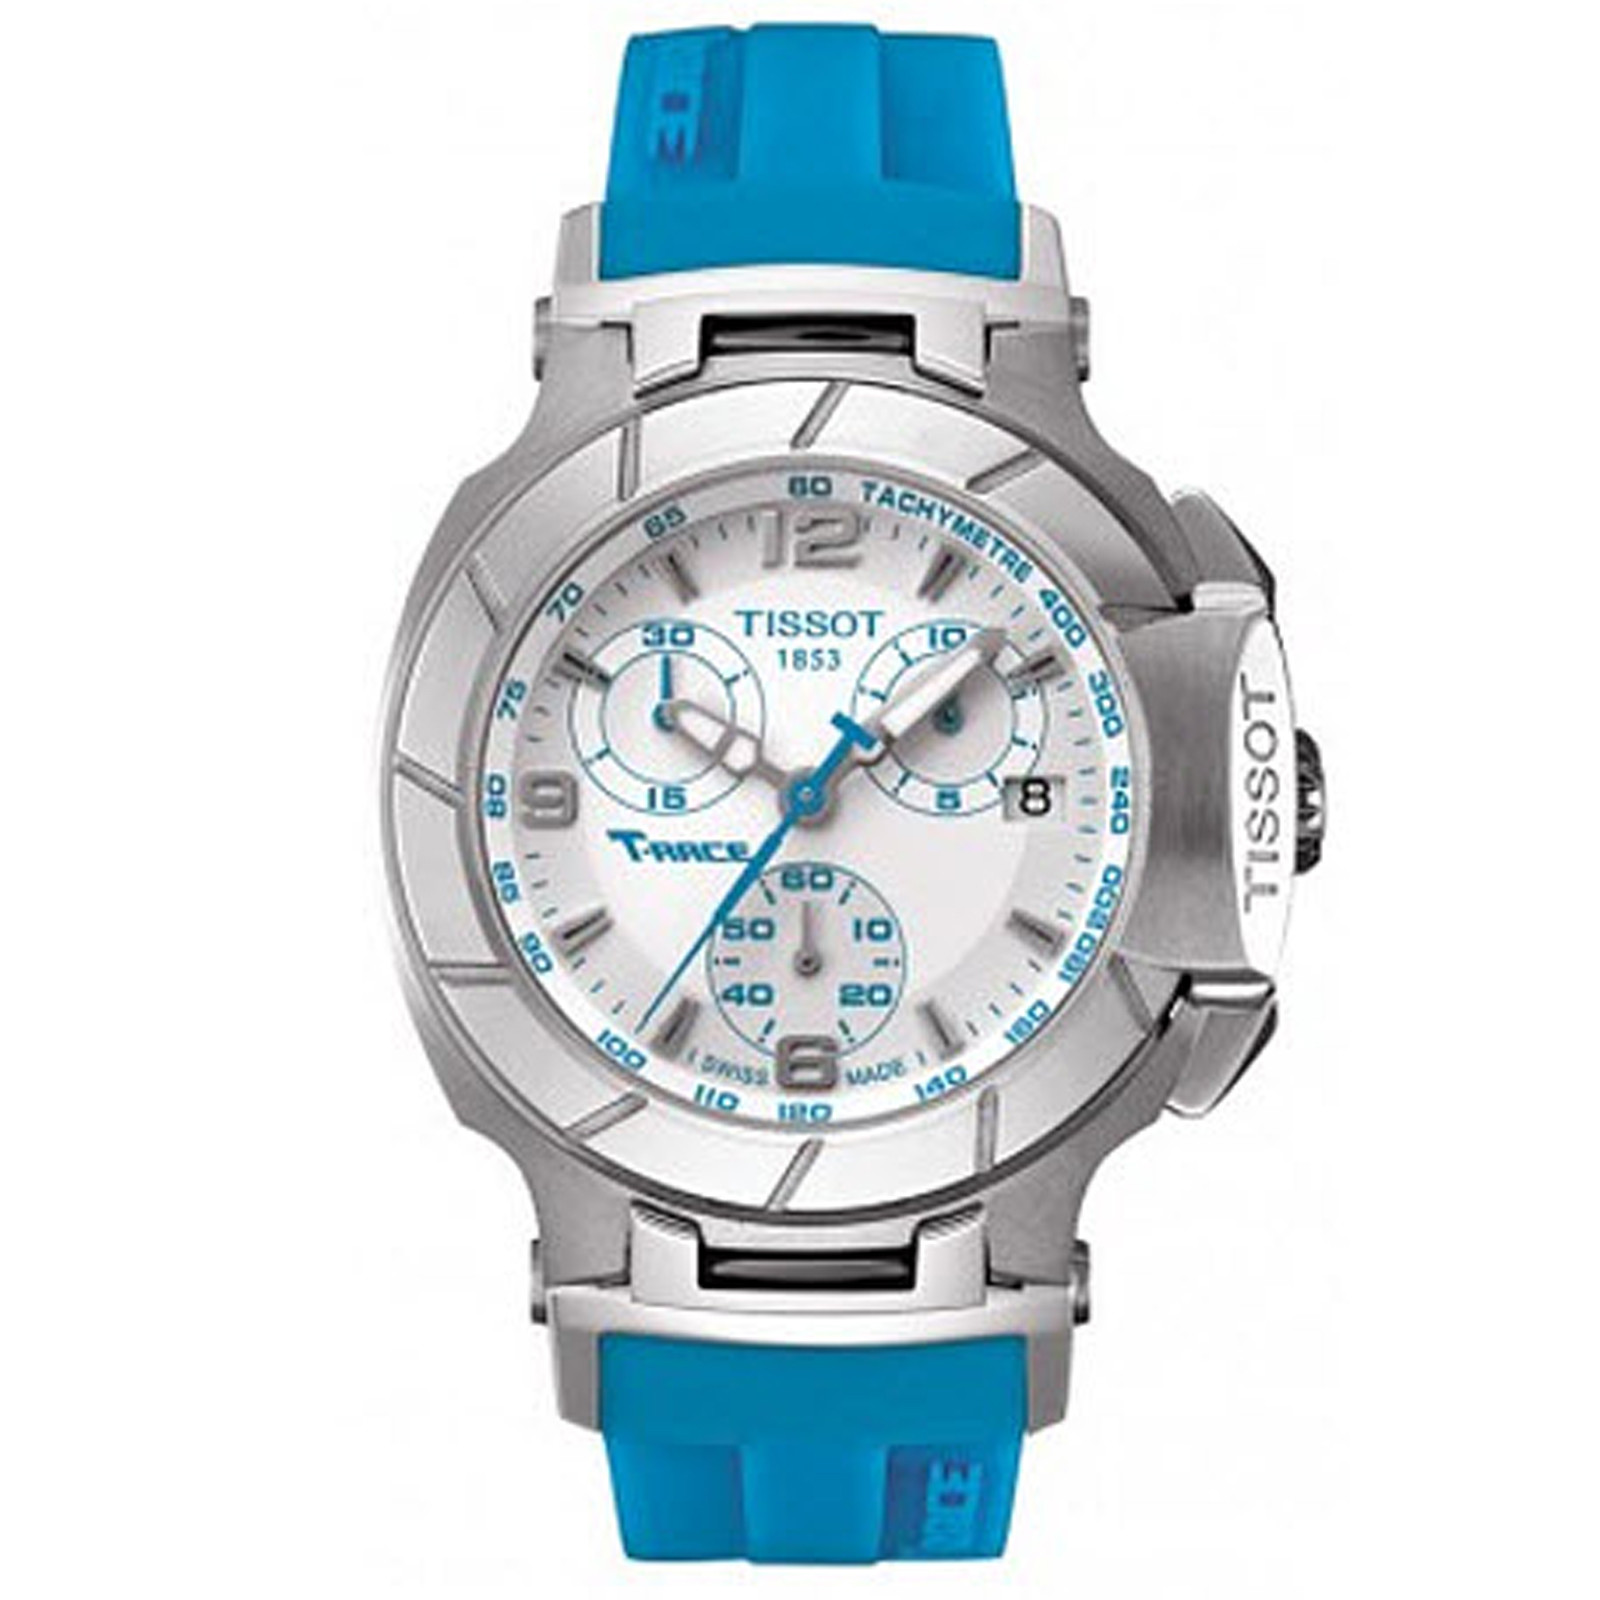 New Women's Tissot T-Race